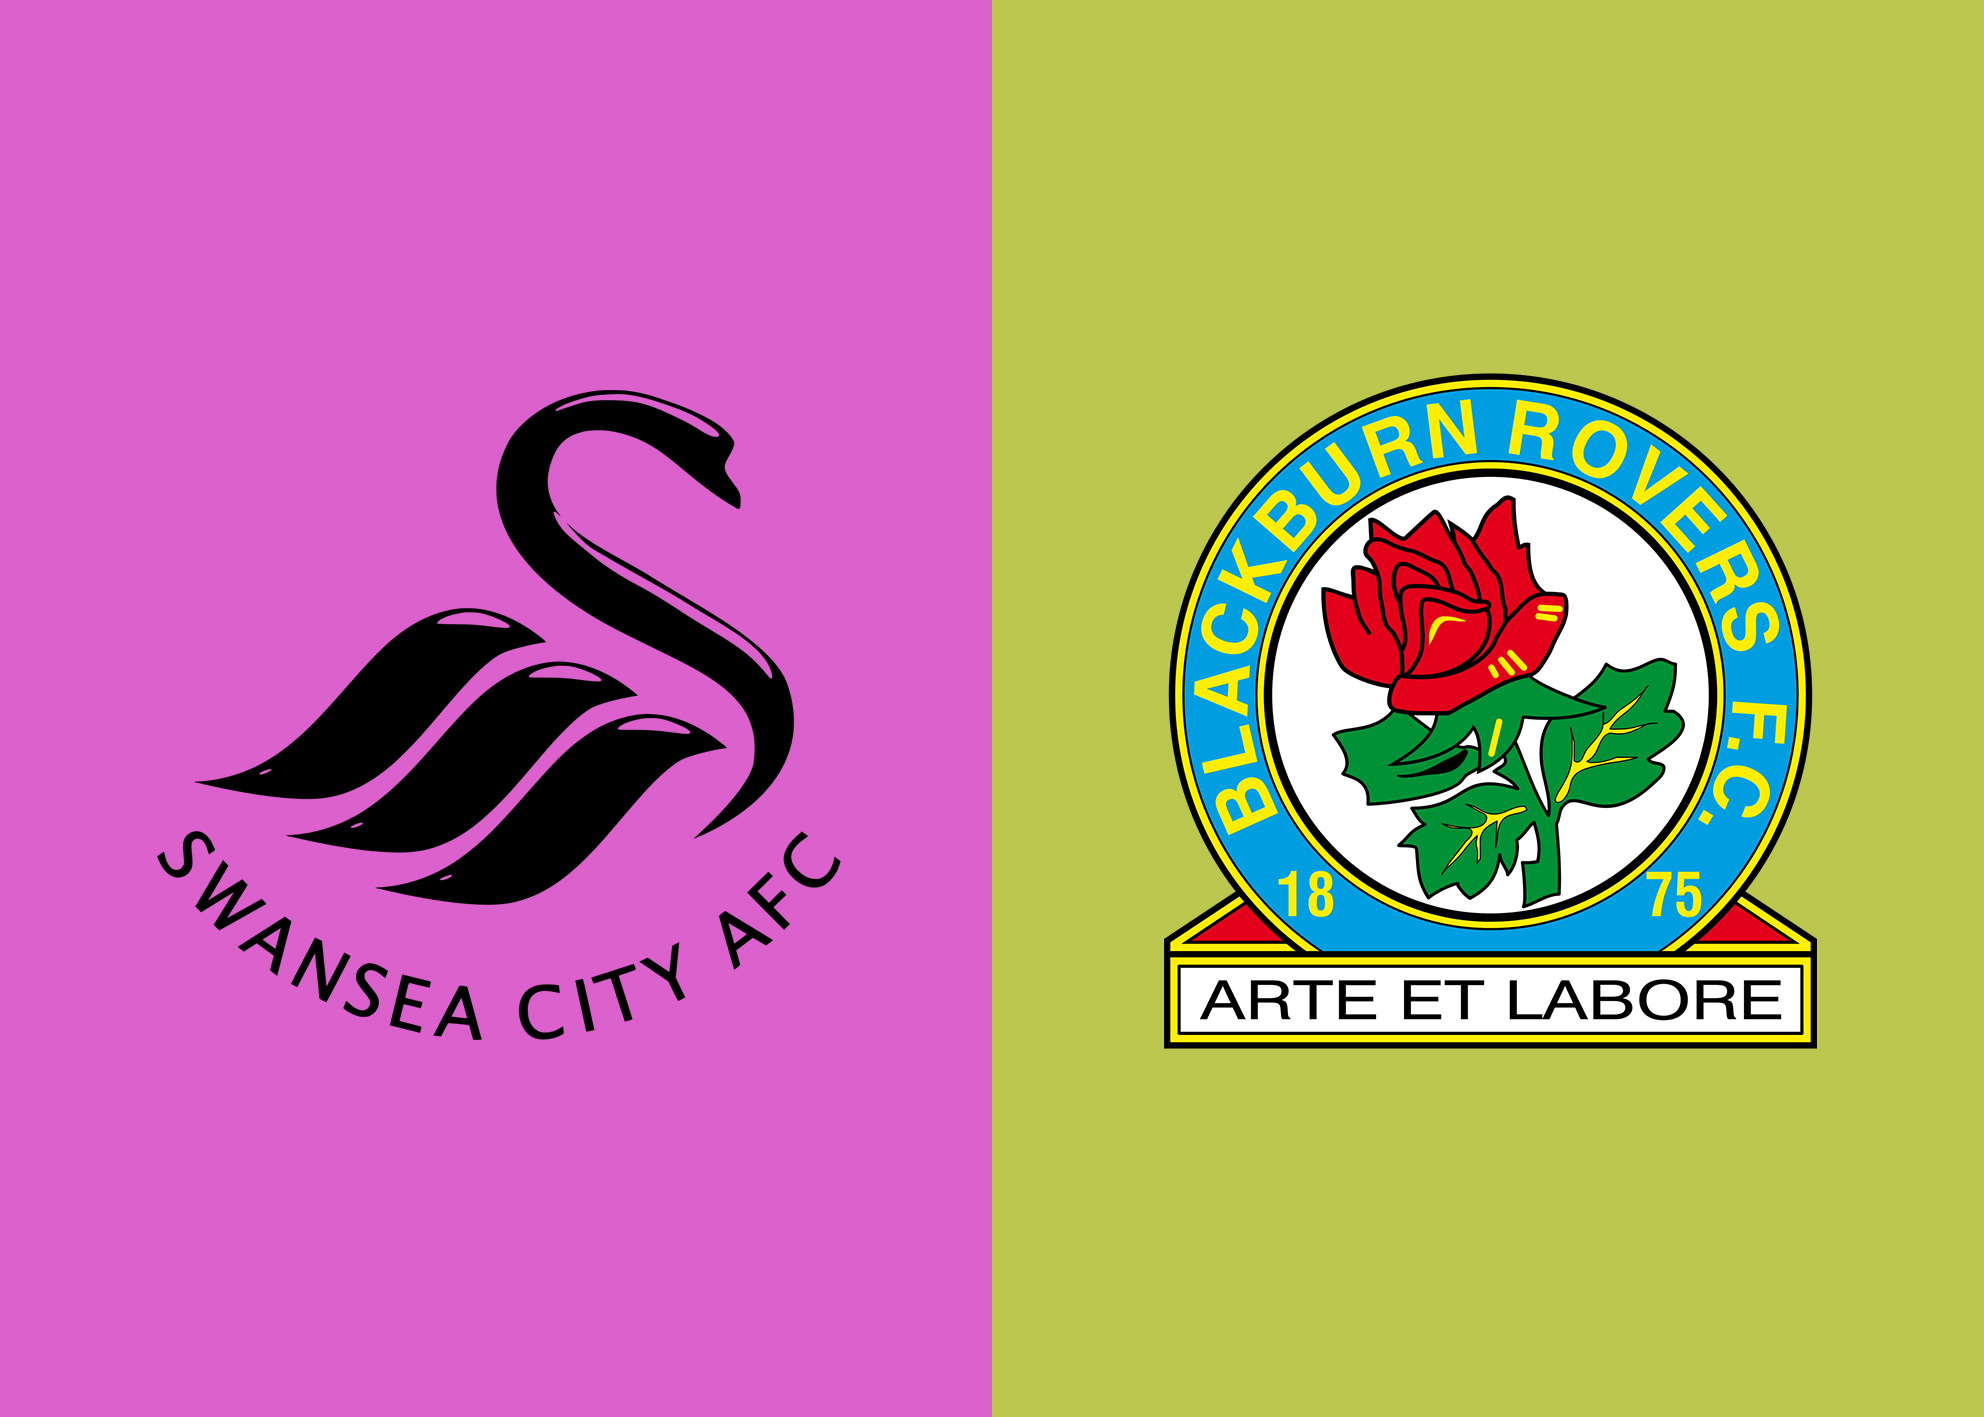 swansea-vs-blackburn-rovers-tip-bong-da-24-10-2018 1